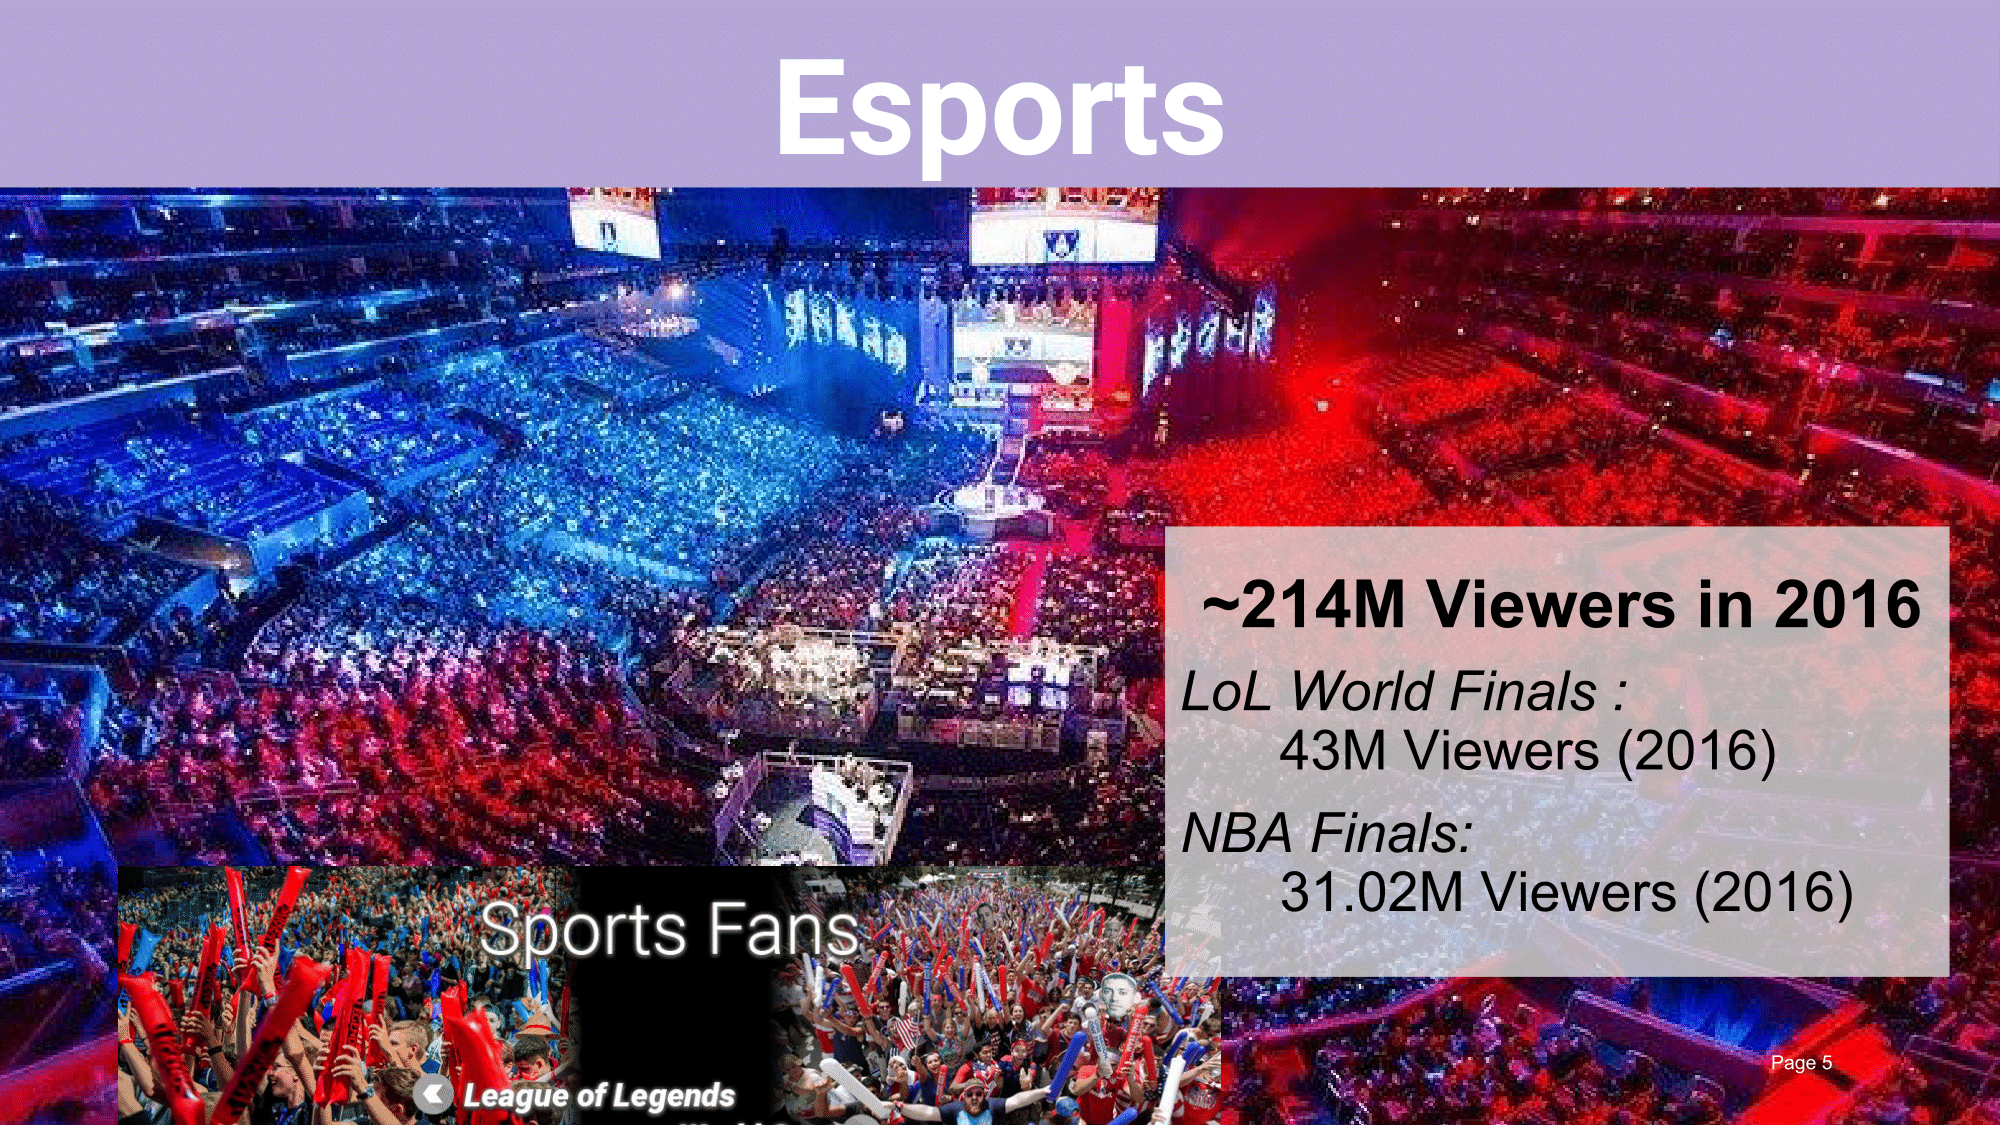 Video Gaming as a spectator sport, players watch the most elite competitive gamers going up against the best in the world for millions of dollars in front of millions of fans. Viewership and engagement is quickly outpacing major sporting events like the NBA finals and Superbowl.